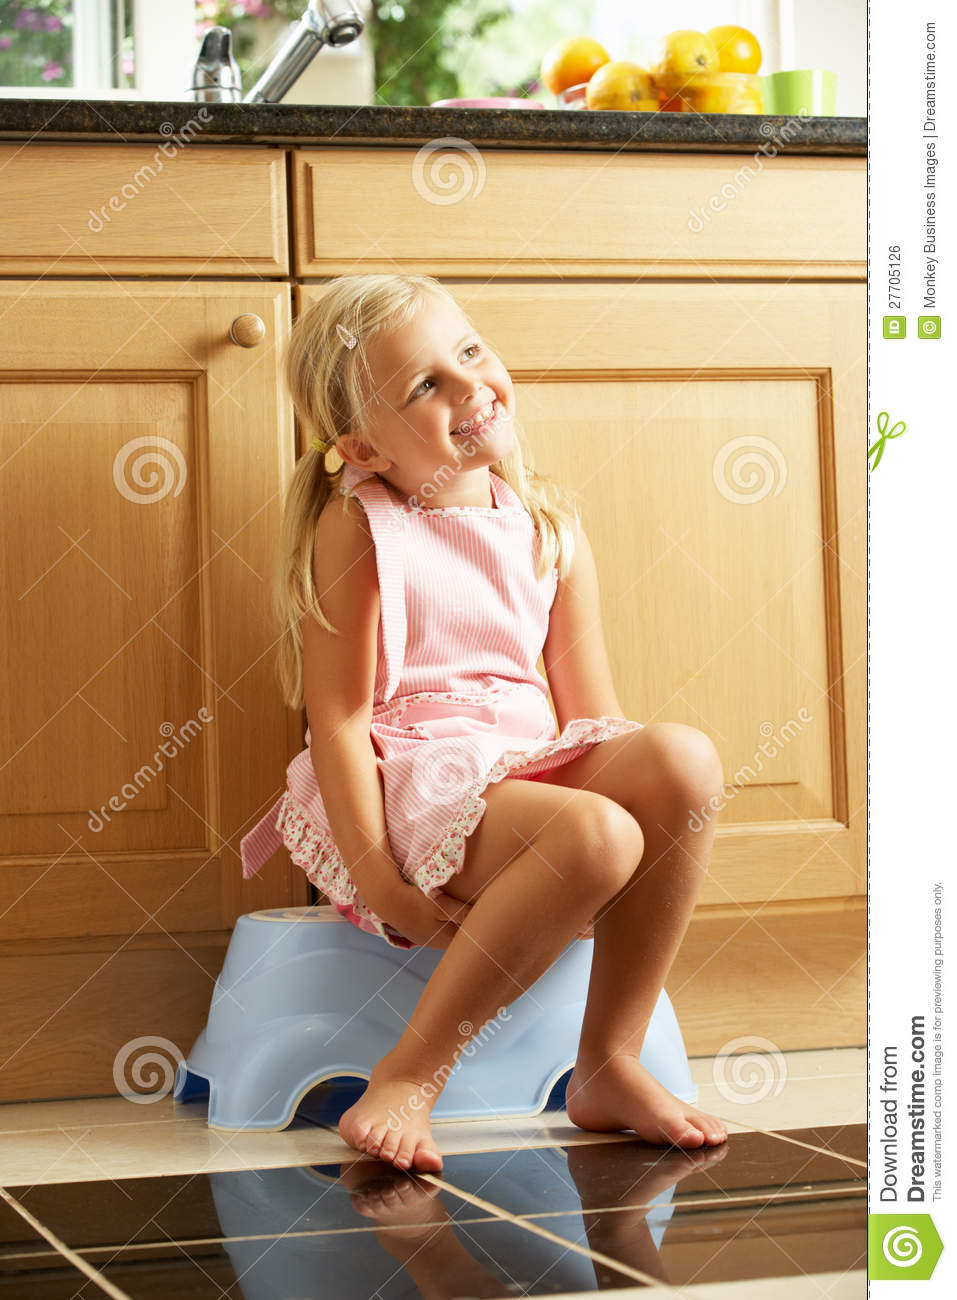 Girl Sitting On Plastic Step In Kitchen Royalty Free Stock